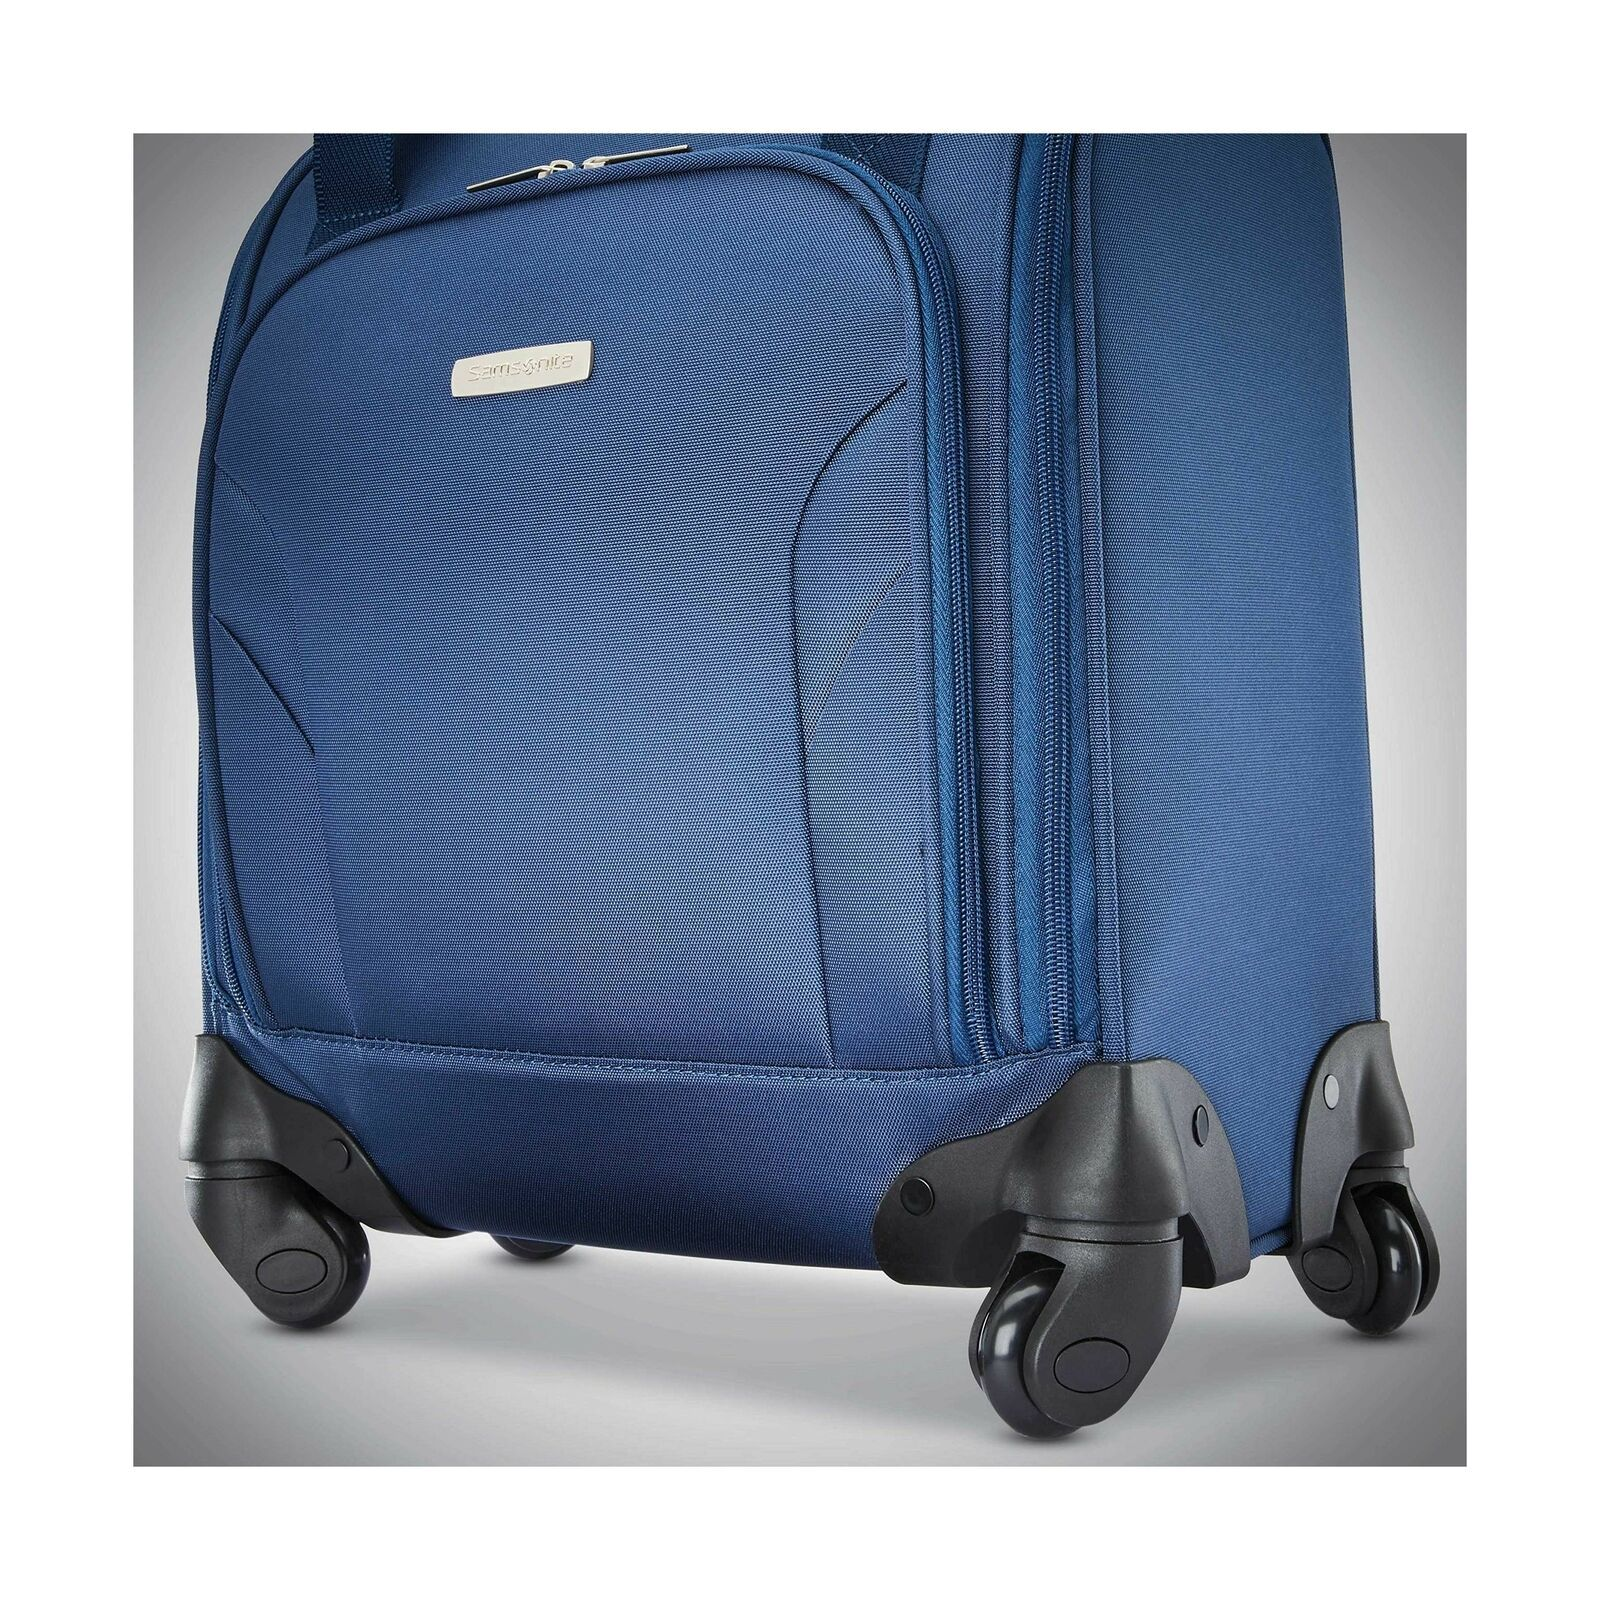 Samsonite Underseat Spinner with USB Port Ocean Travel Luggage Rolling Suitcase